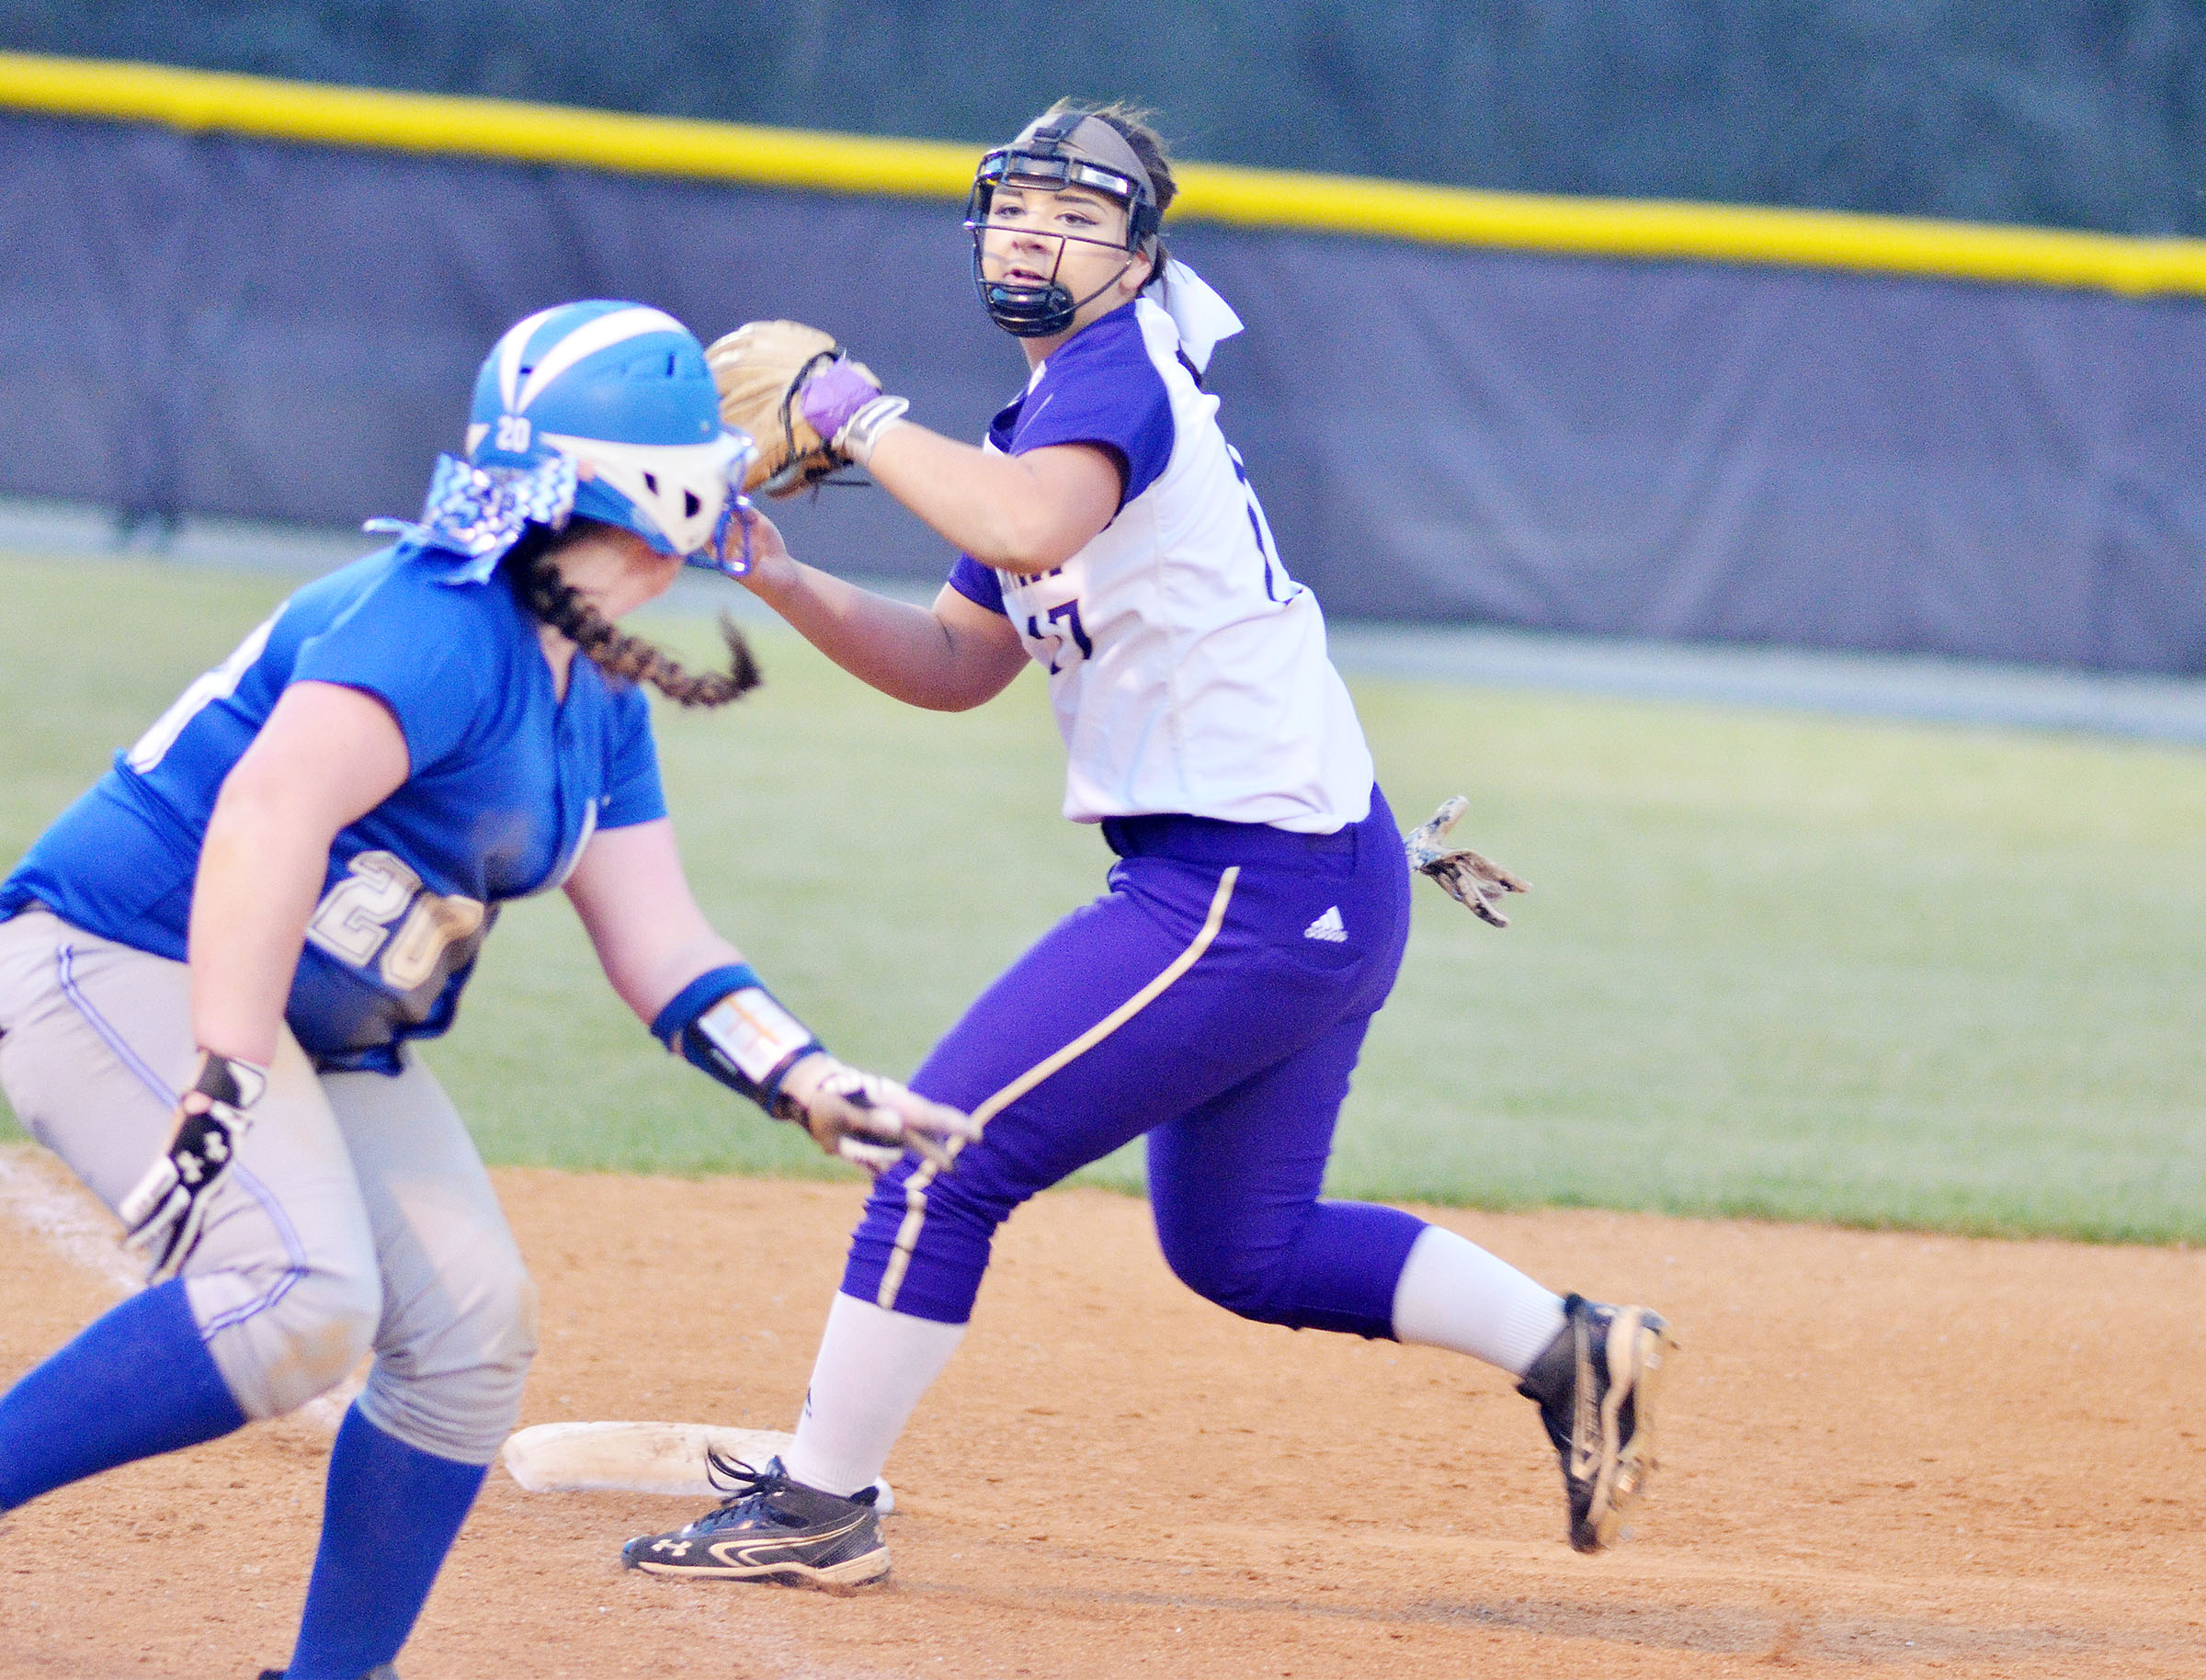 CHS senior Kailey Morris catches the ball and steps on third for a double play.